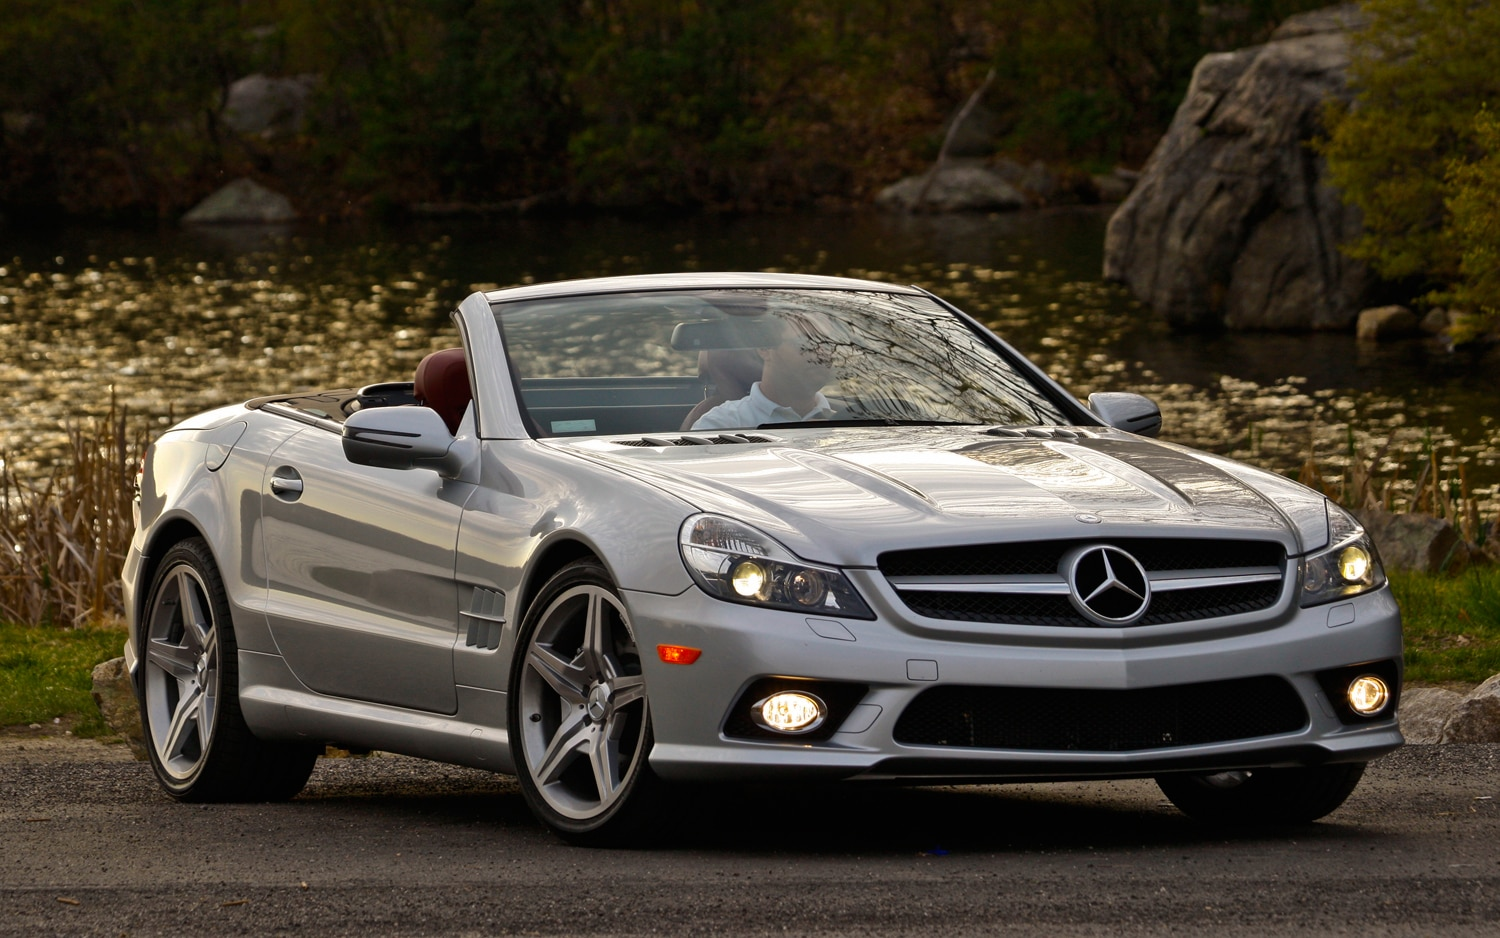 Image gallery 2012 mb sl 550 for Used mercedes benz sl550